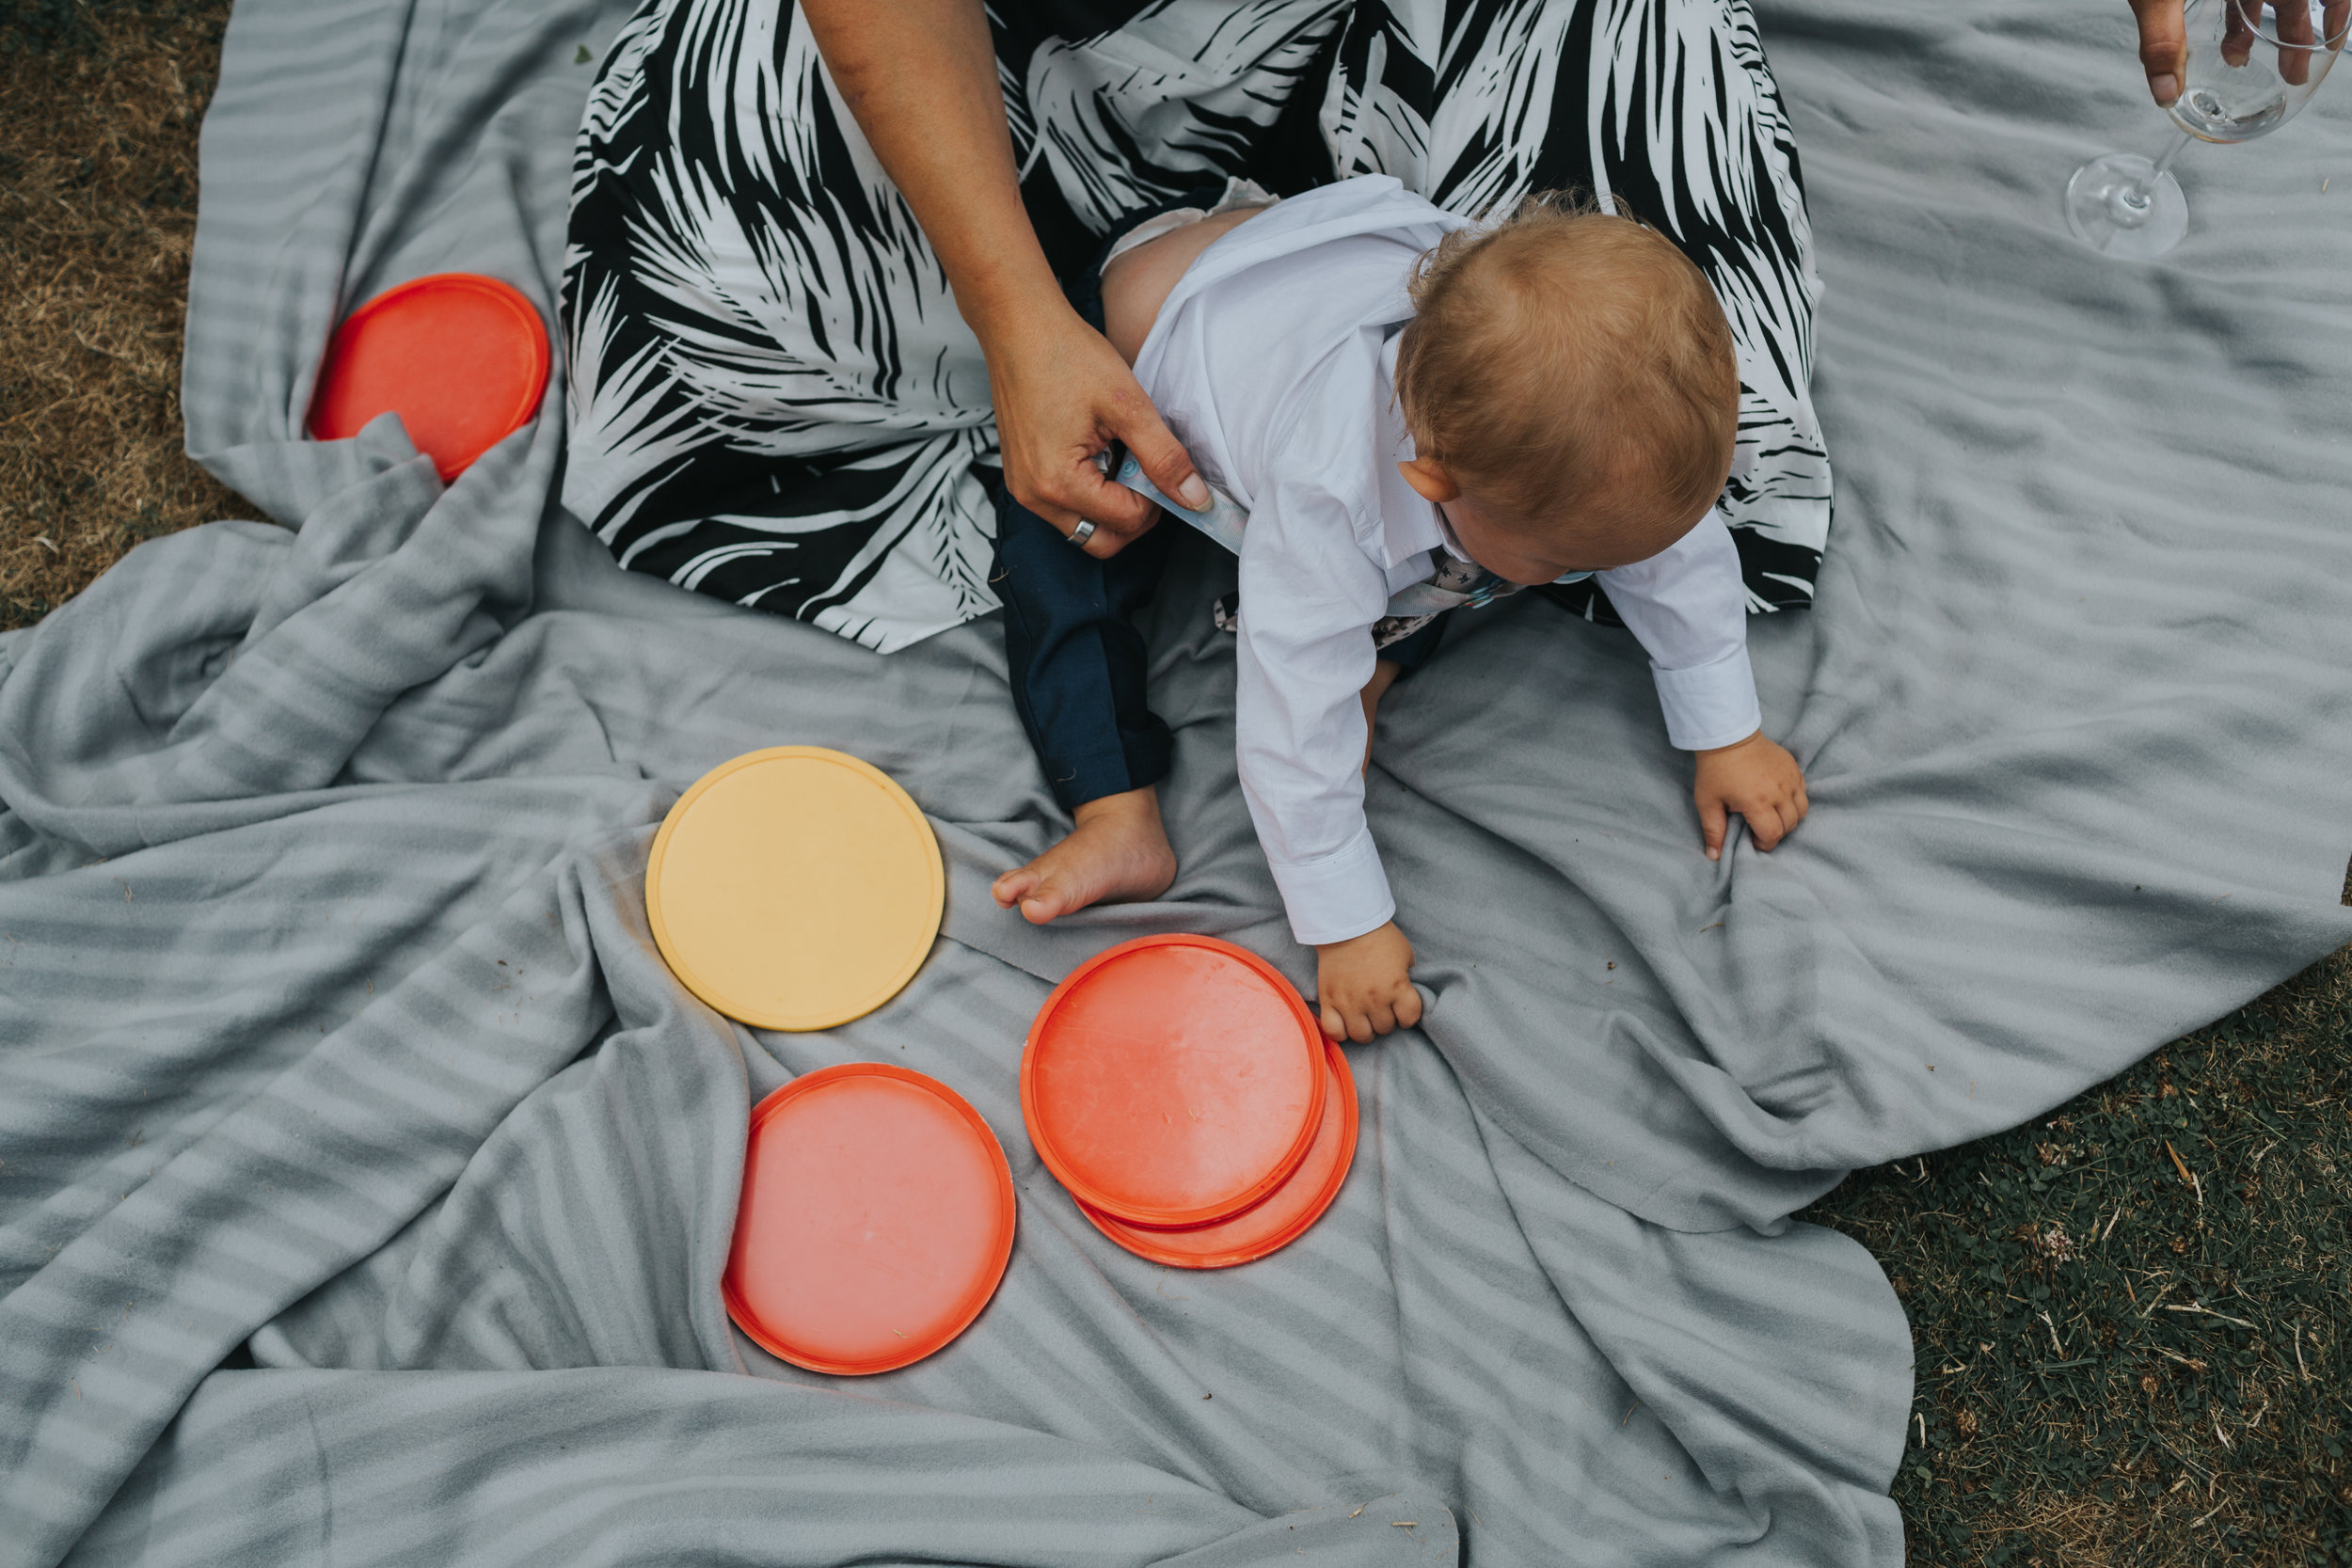 Little boy playing Connect 4 on blanket.